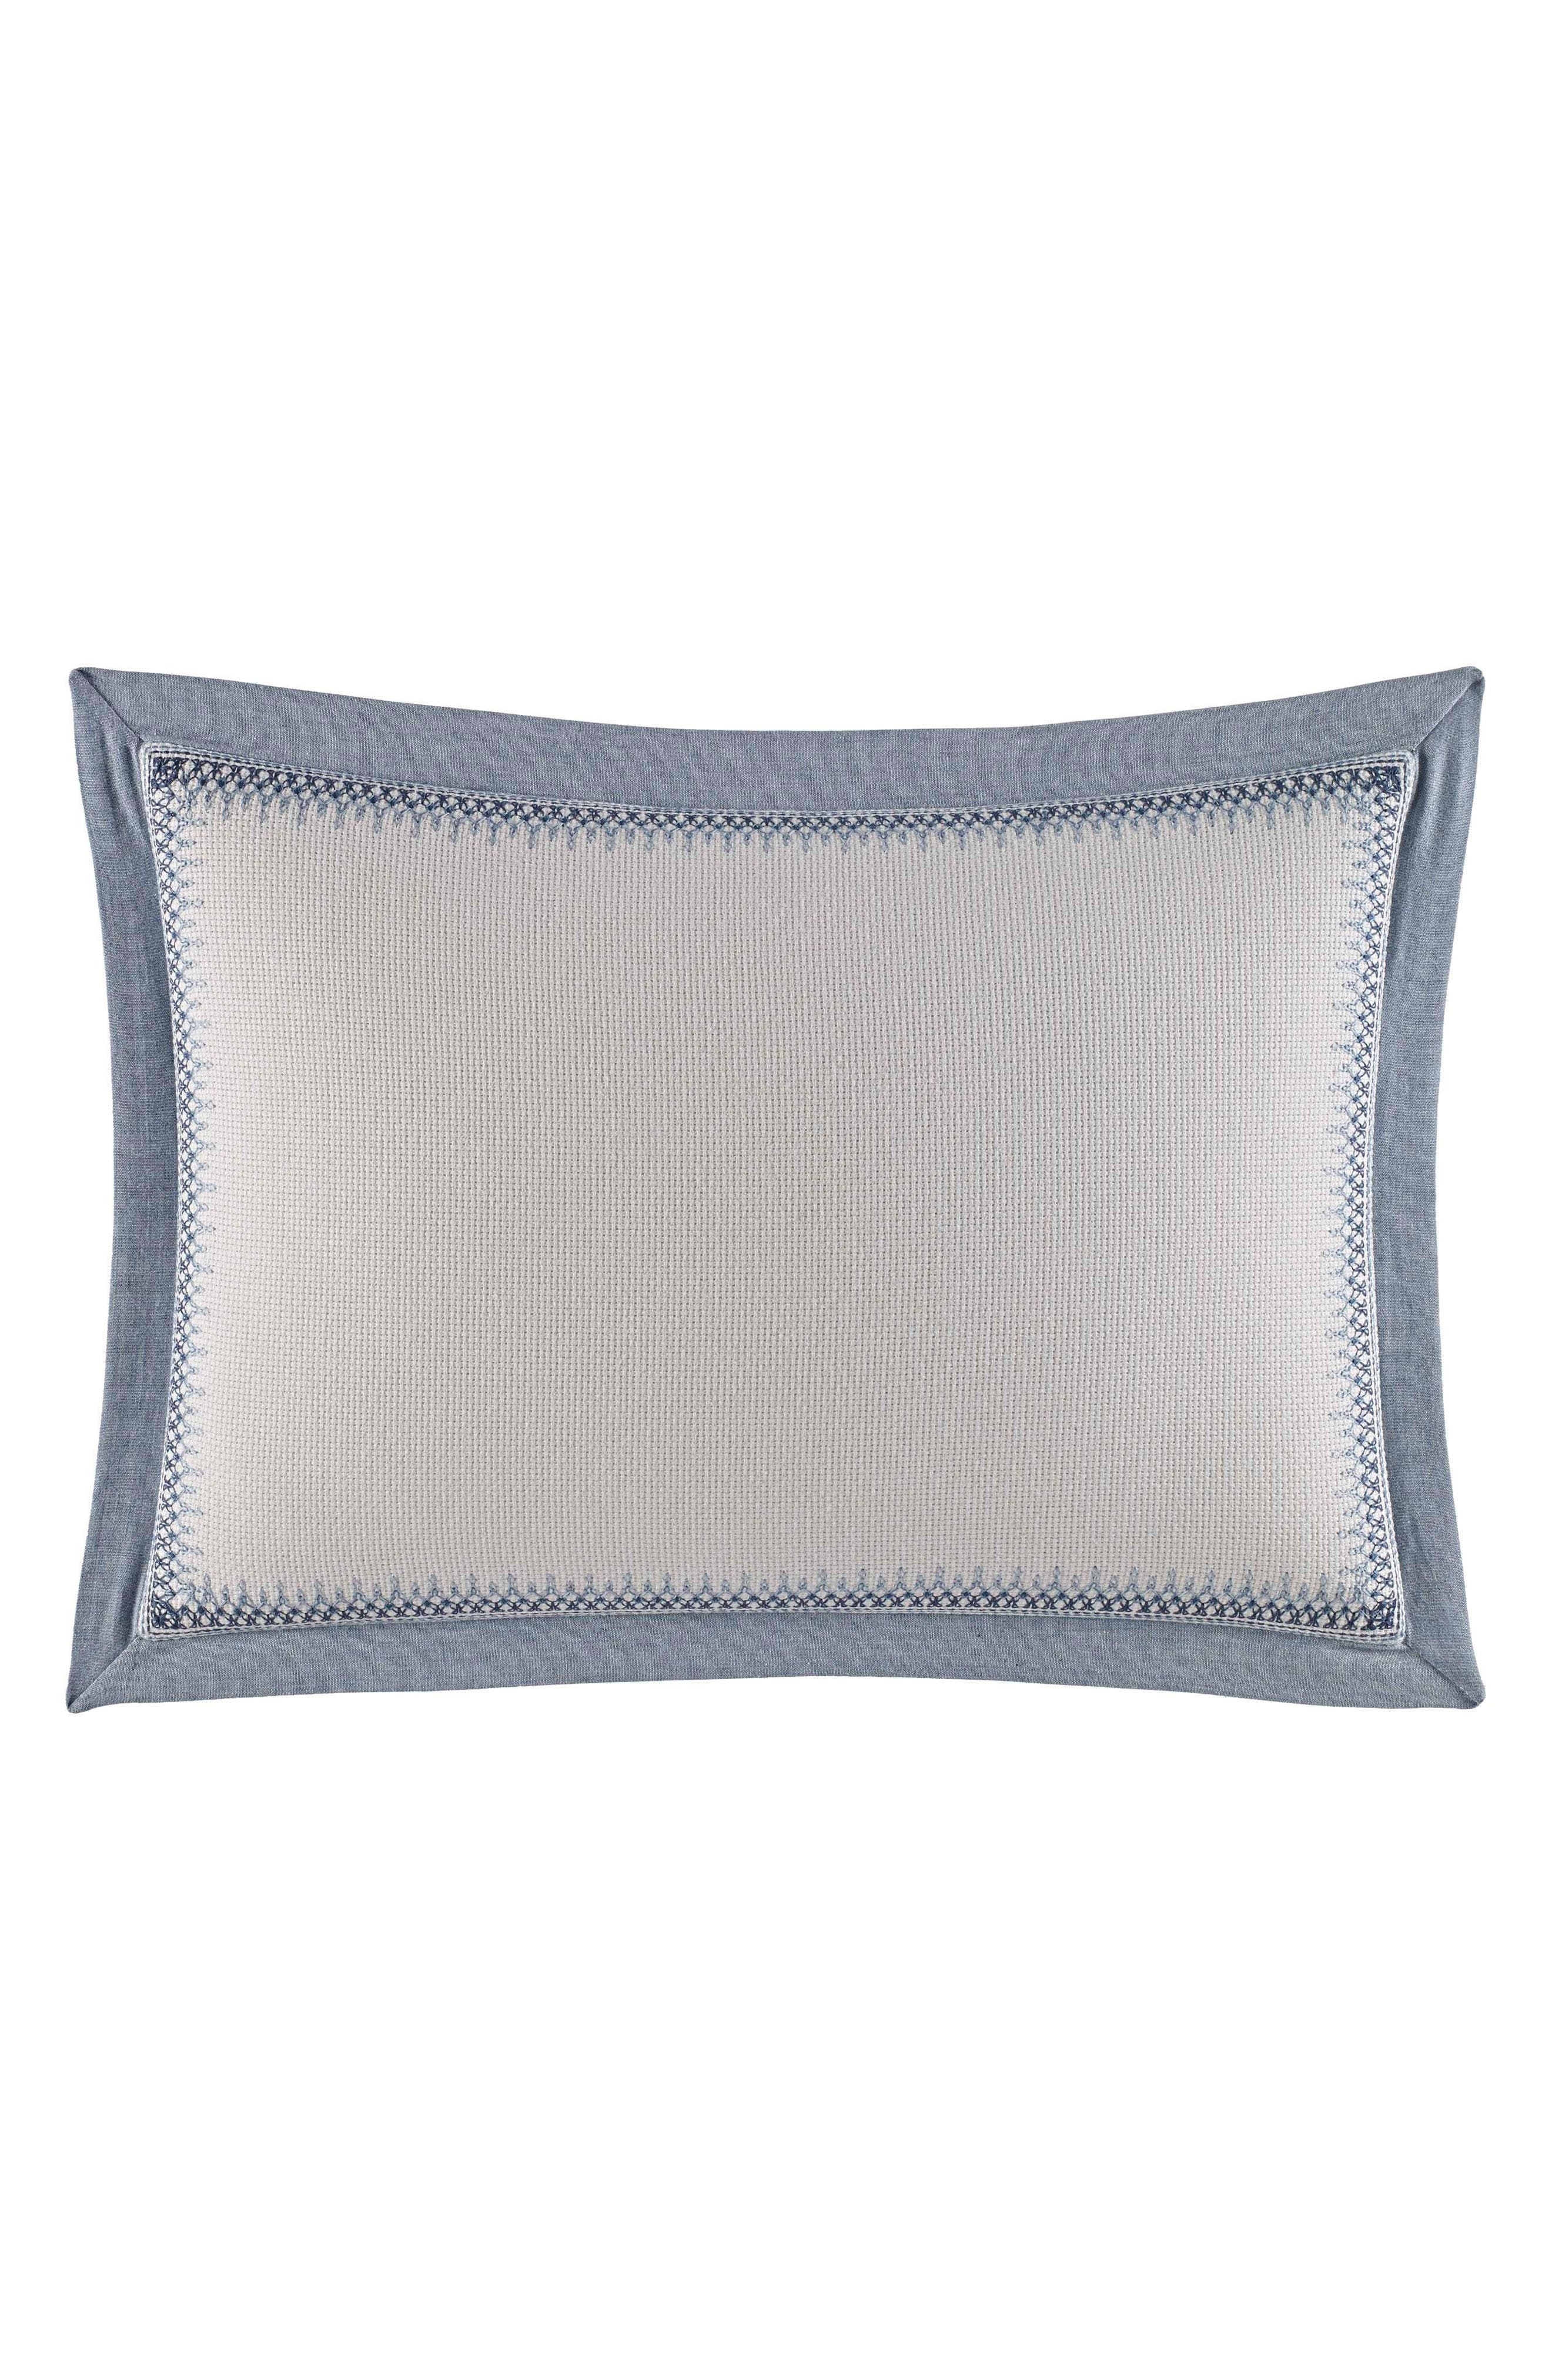 NAUTICA,                             Abbot Embroidered Accent Pillow,                             Main thumbnail 1, color,                             MEDIUM BLUE